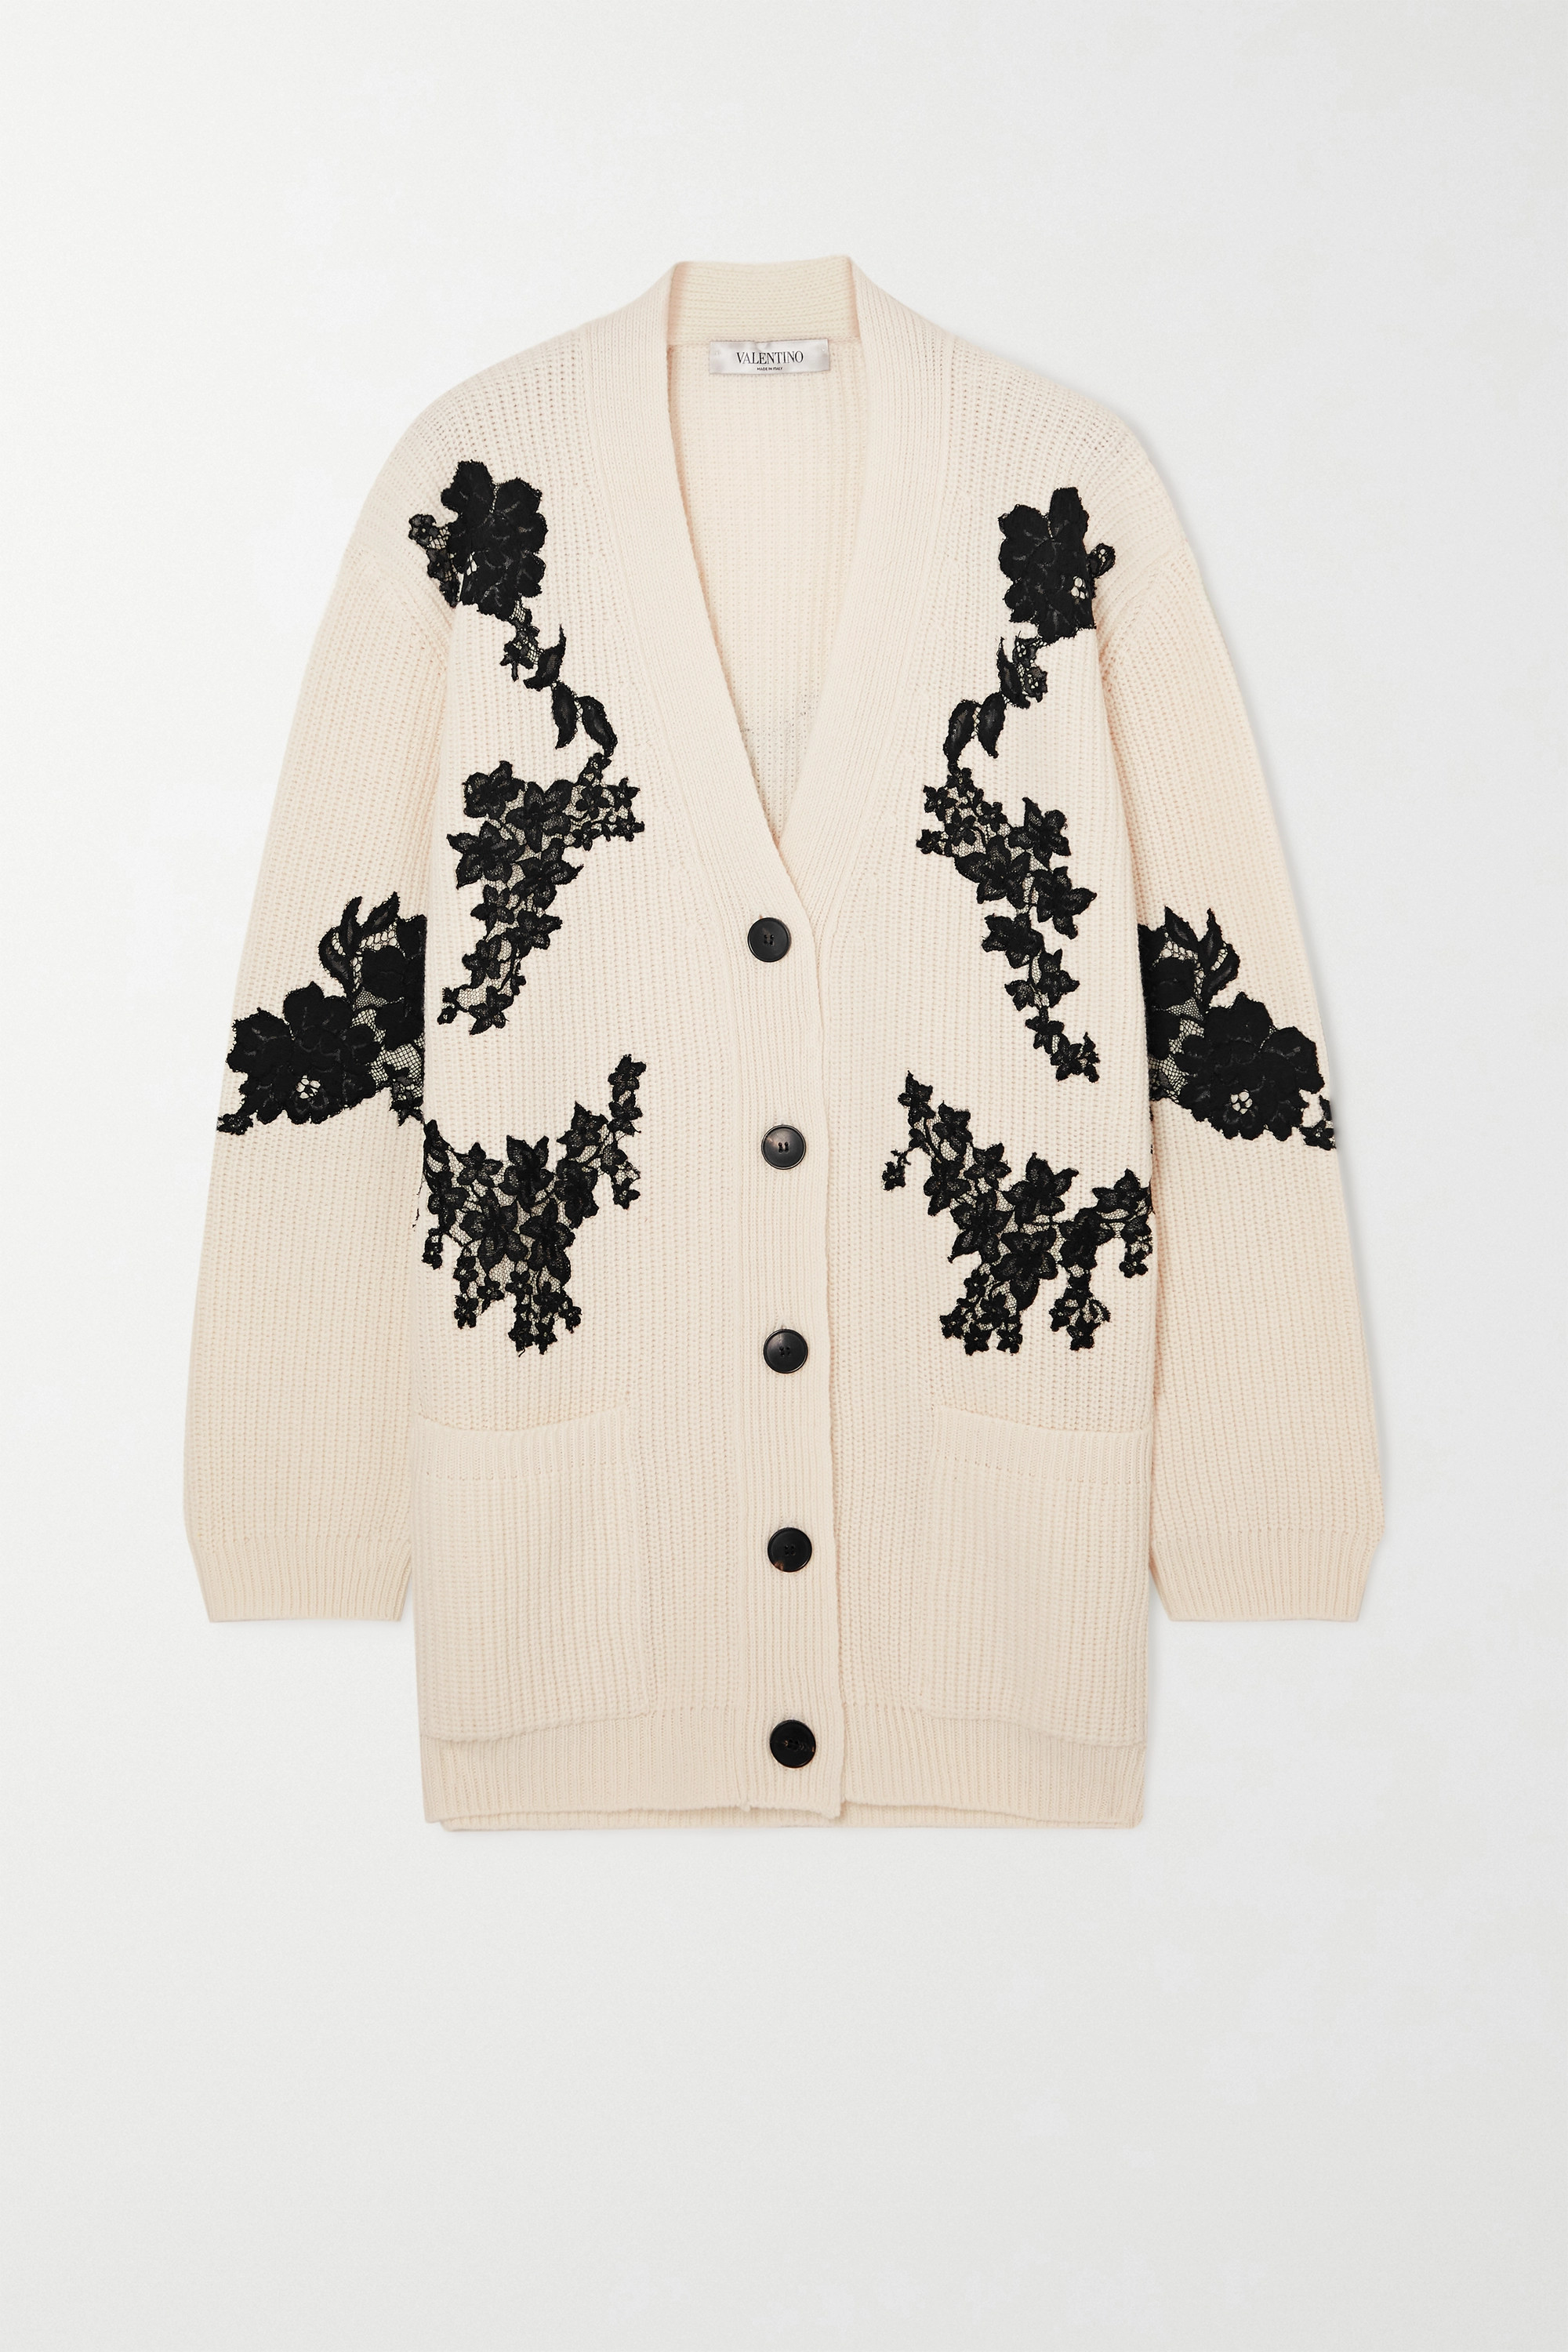 VALENTINO Lace-paneled ribbed wool and cashmere-blend cardigan